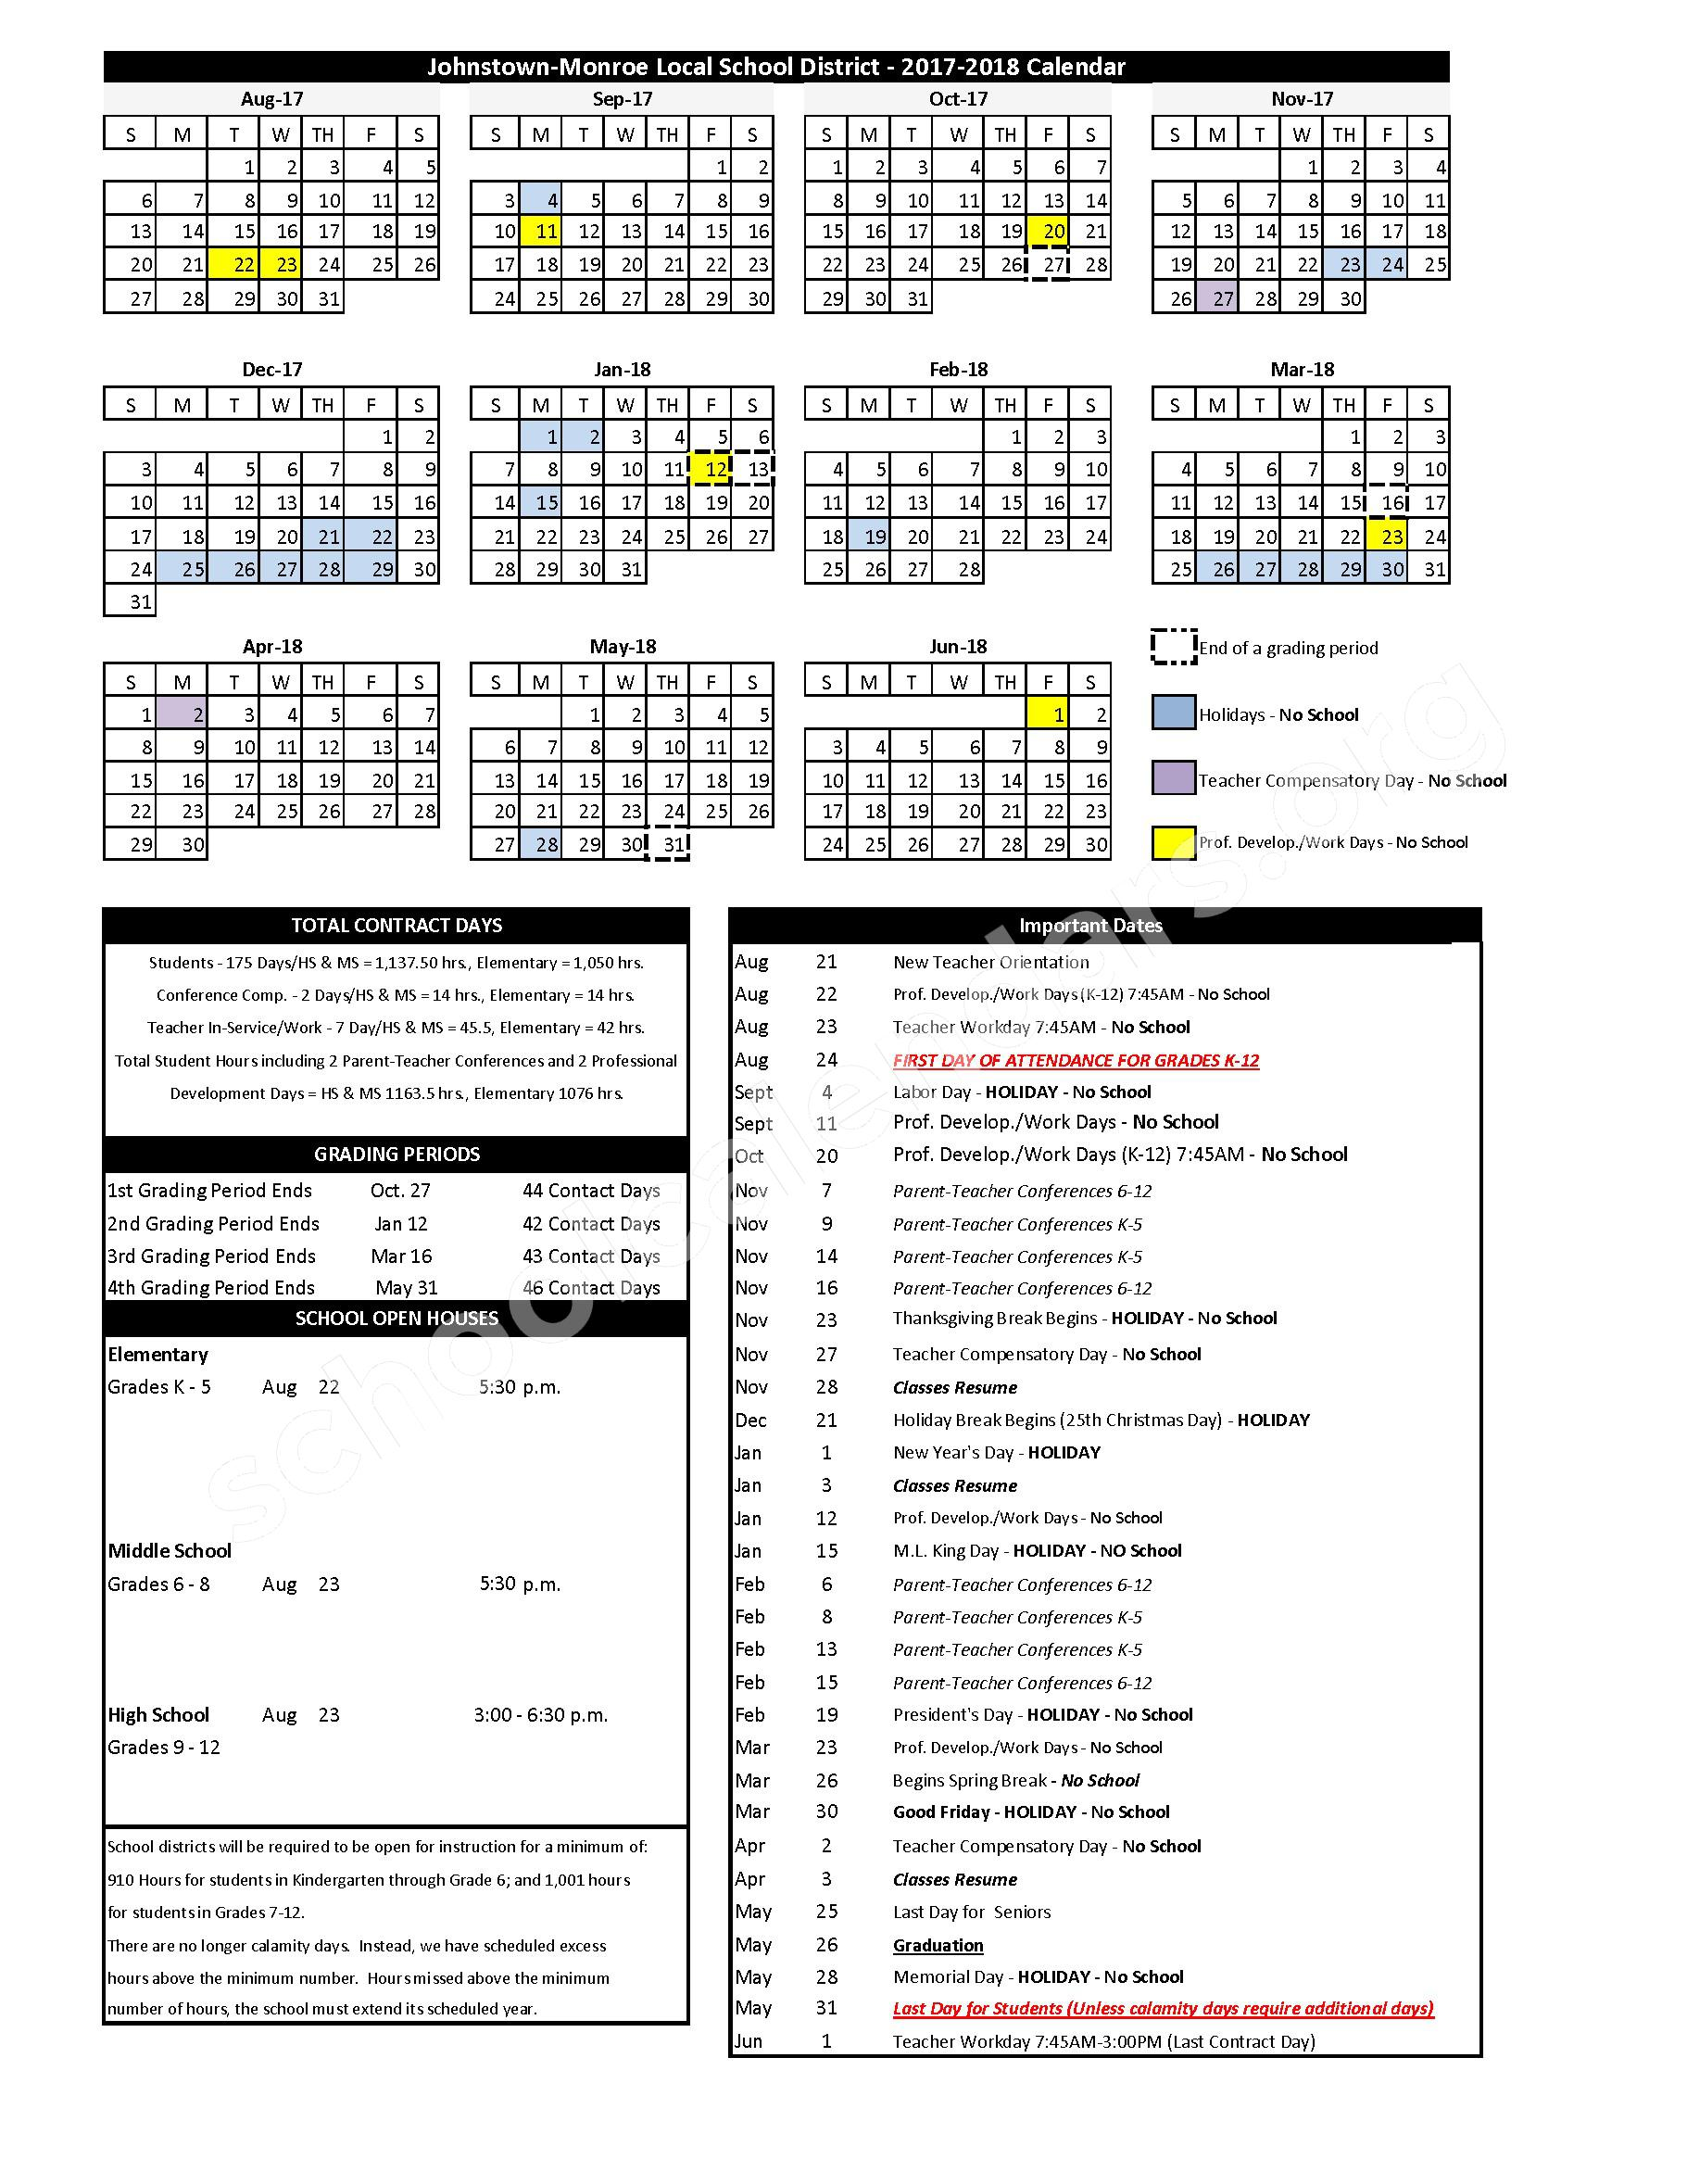 2017 - 2018 School Calendar – Johnstown High School – page 1